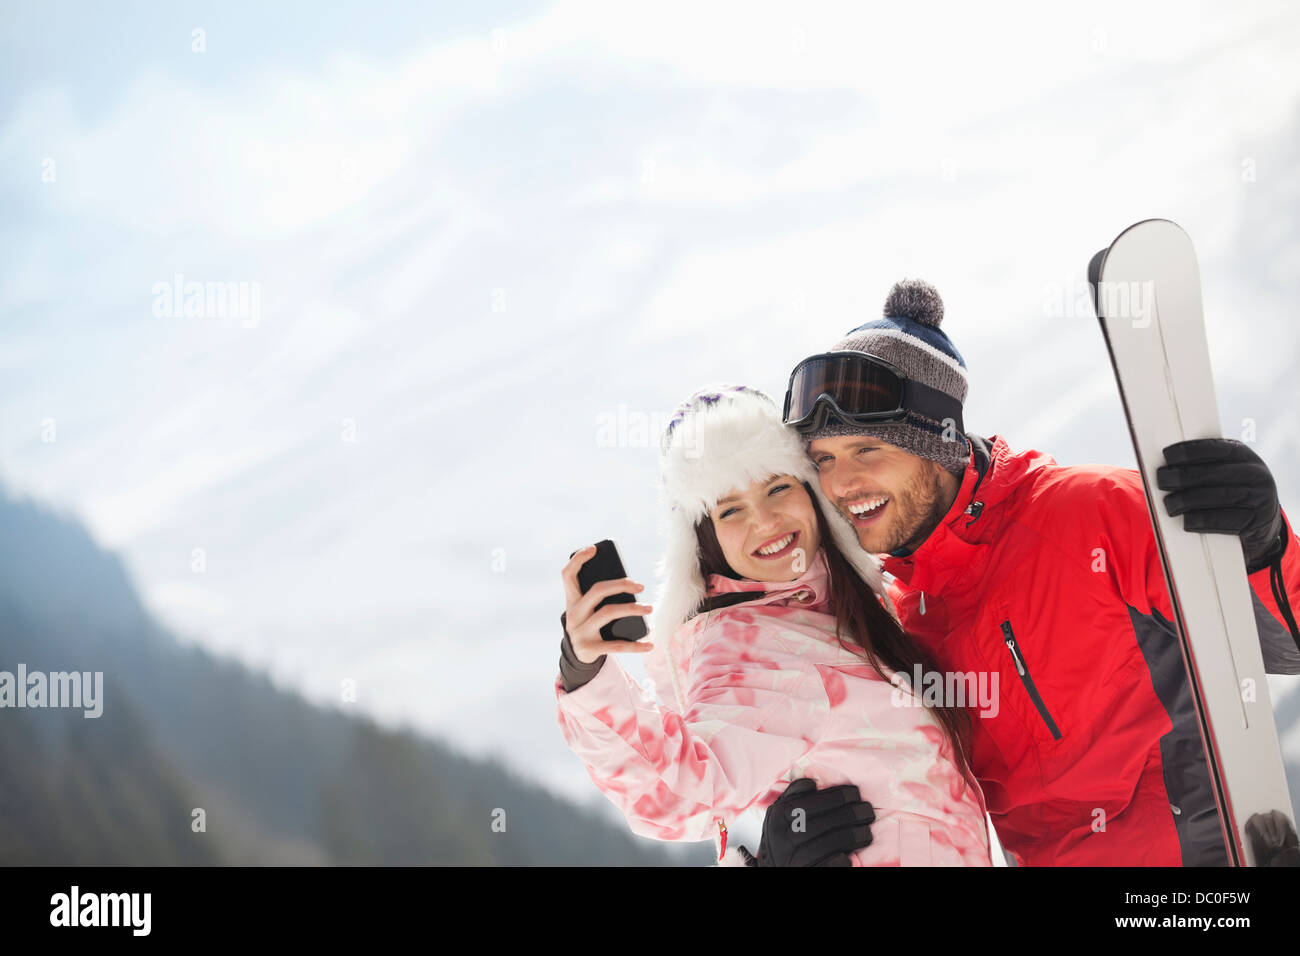 Happy couple with skis taking self-portrait with camera phone - Stock Image